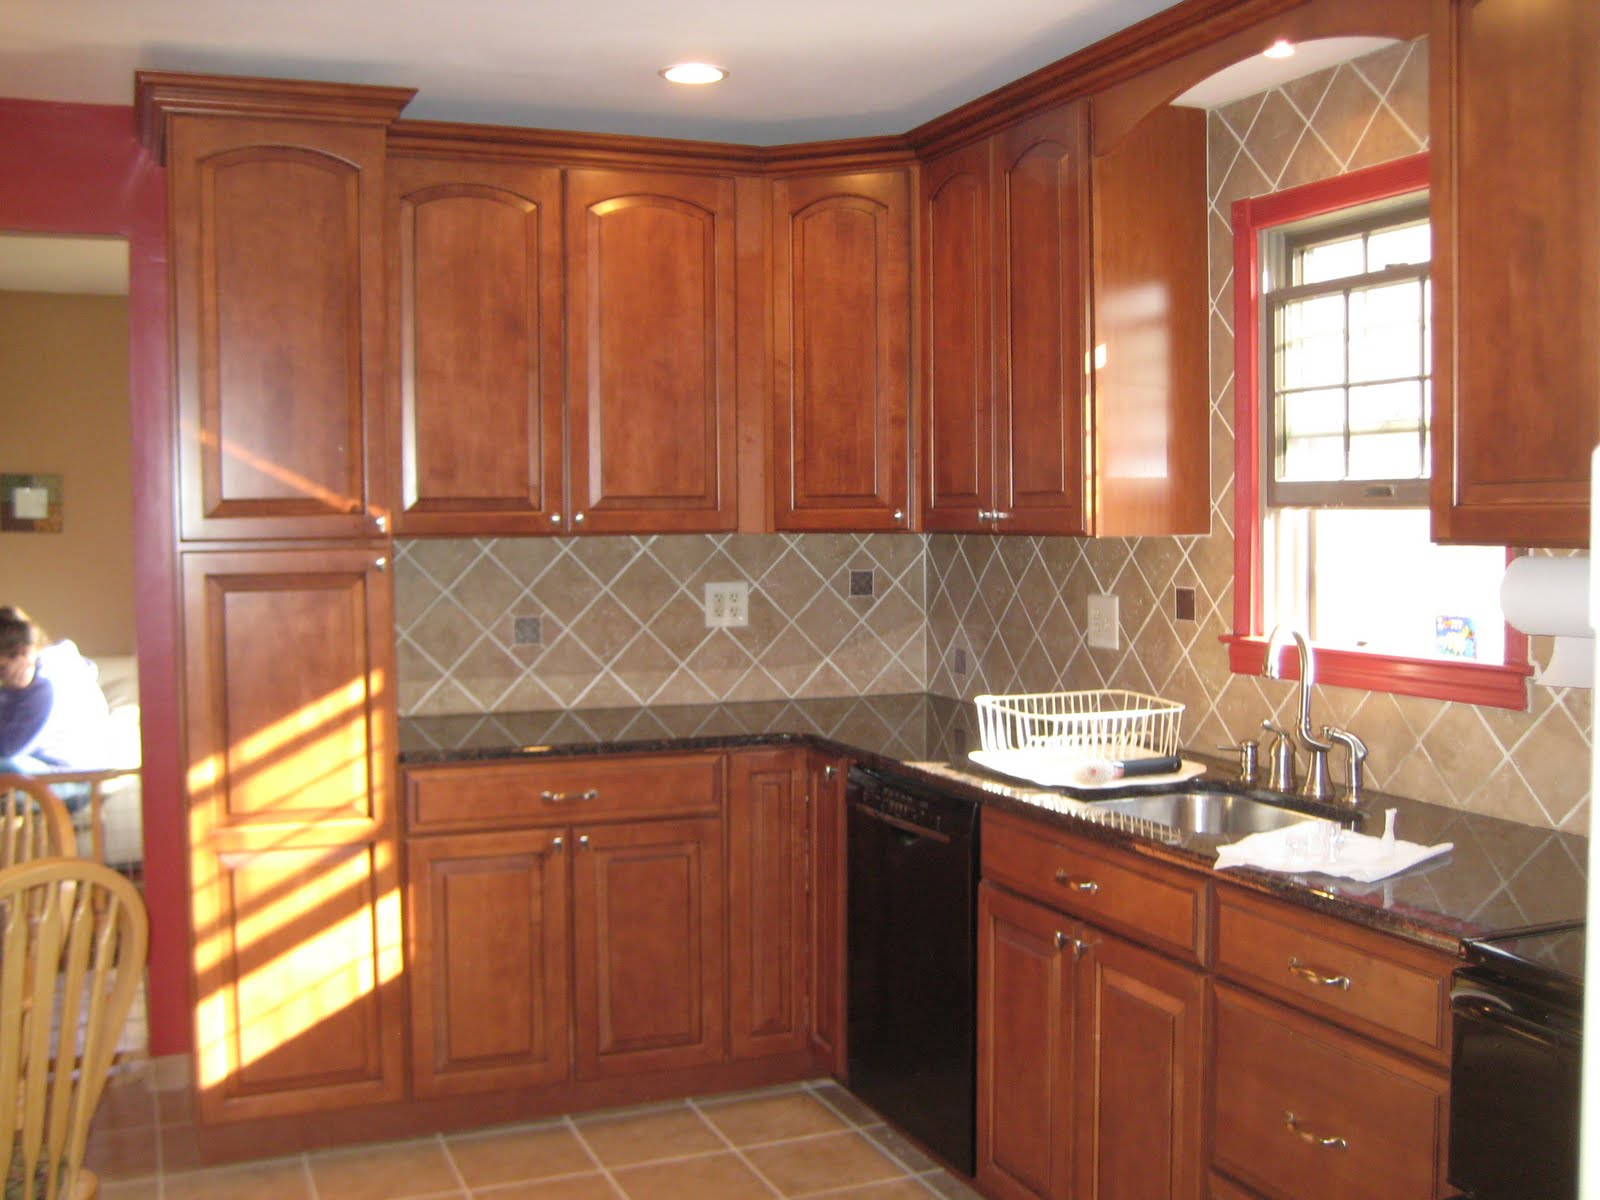 Kitchen Counter Tile Designs